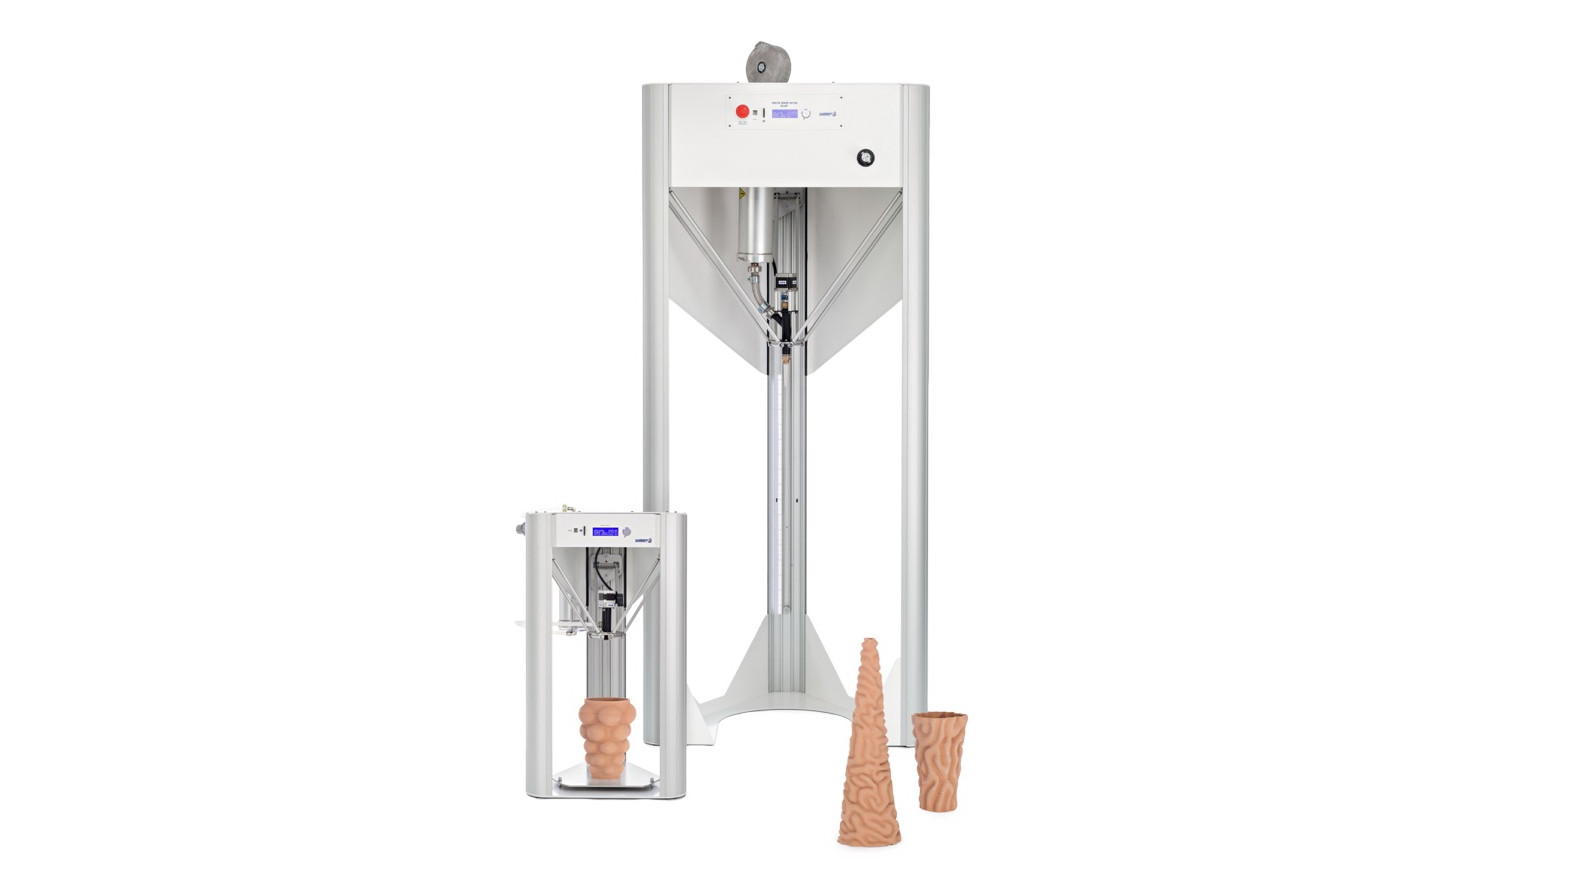 Wasp Launches 2 New Ceramic 3D Printers | All3DP